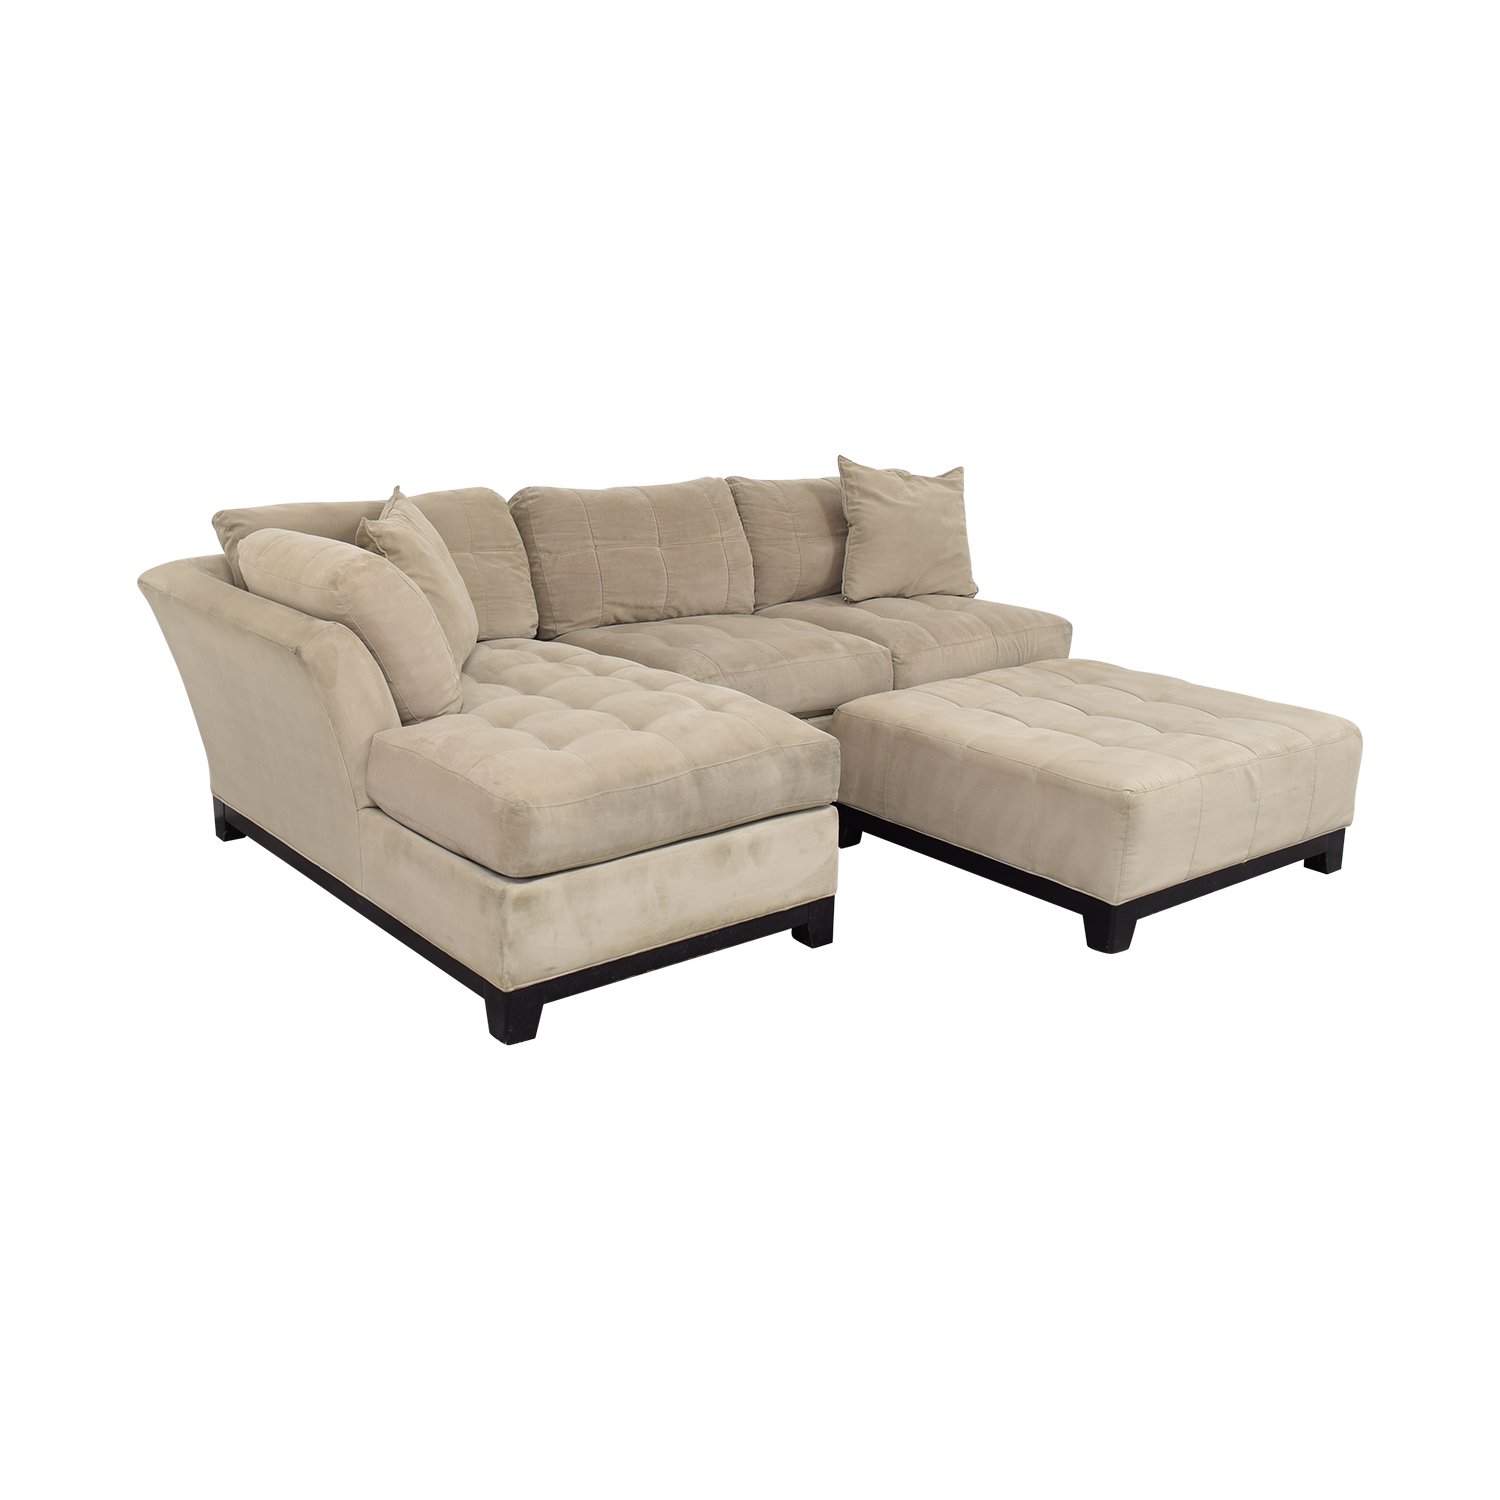 Cindy Crawford Home Cindy Crawford Home Microfiber Sectional with Ottoman pa